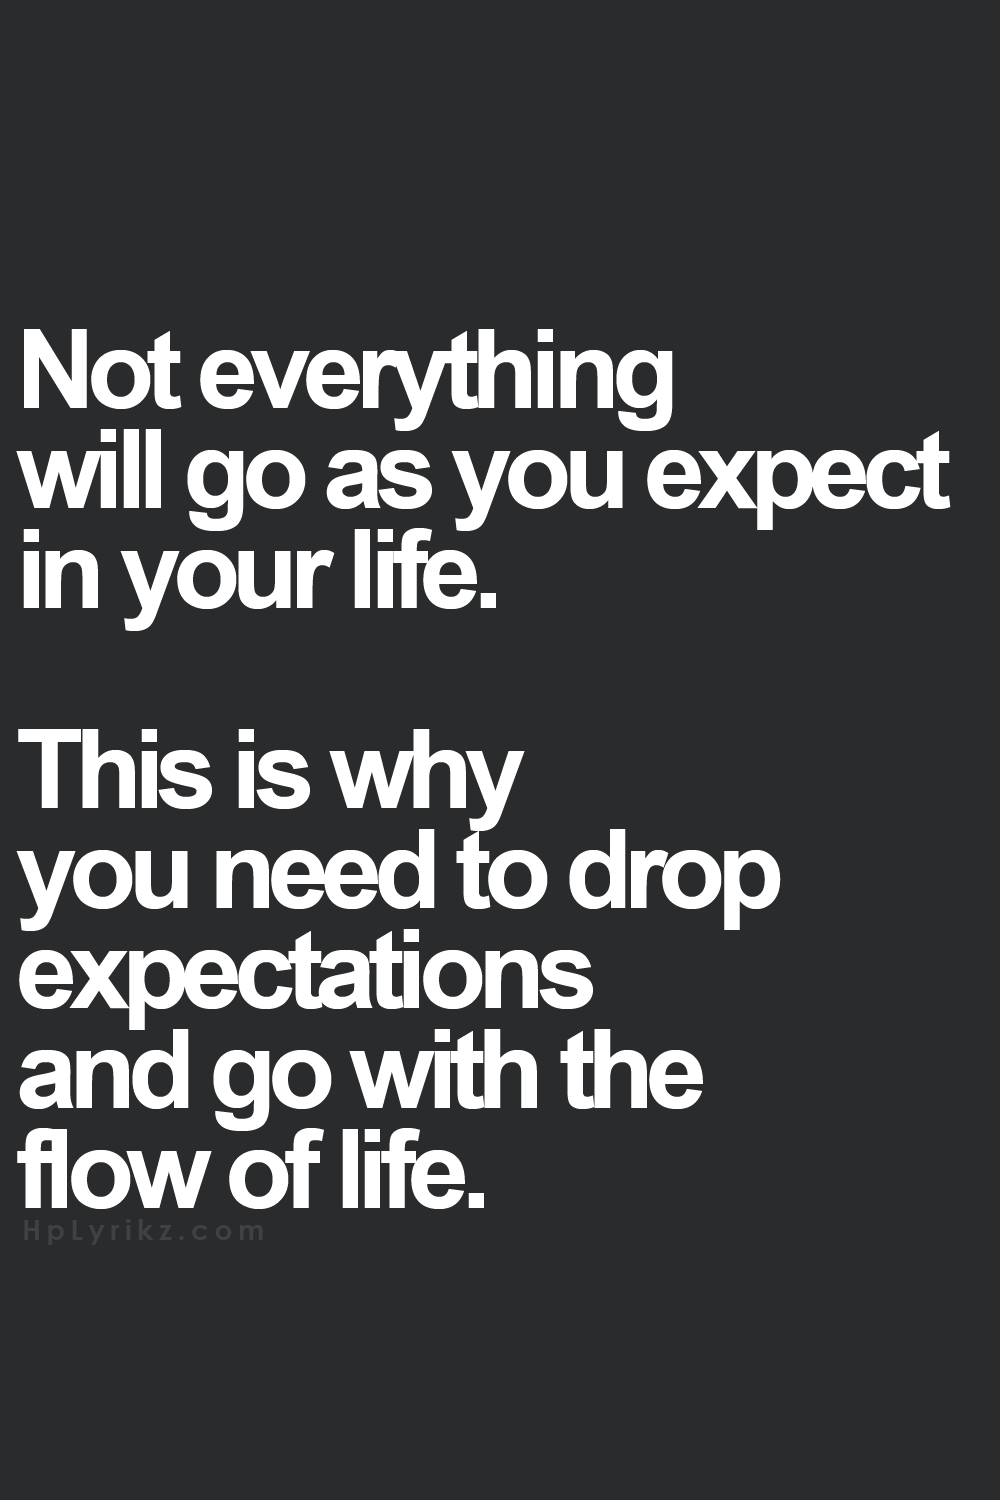 Not everything will go as you expect in your life.